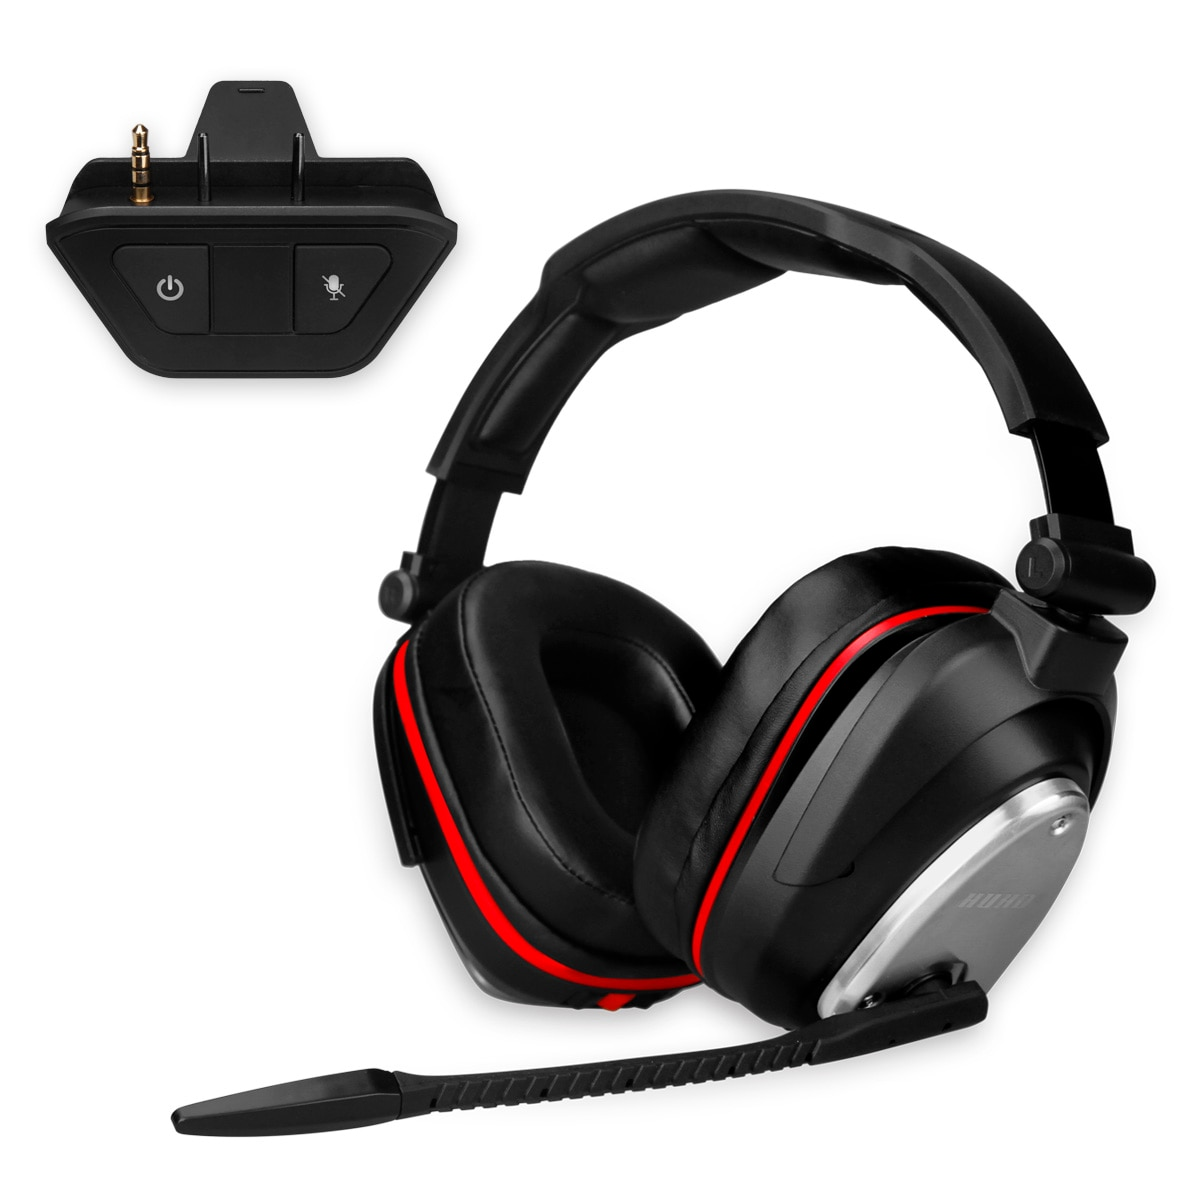 Wireless Gaming Headphones 7.1 Virtual Surround Sound 2.4G Foldable Headsets for Xbox One and Xbox Series X/S 24mS Low Latency